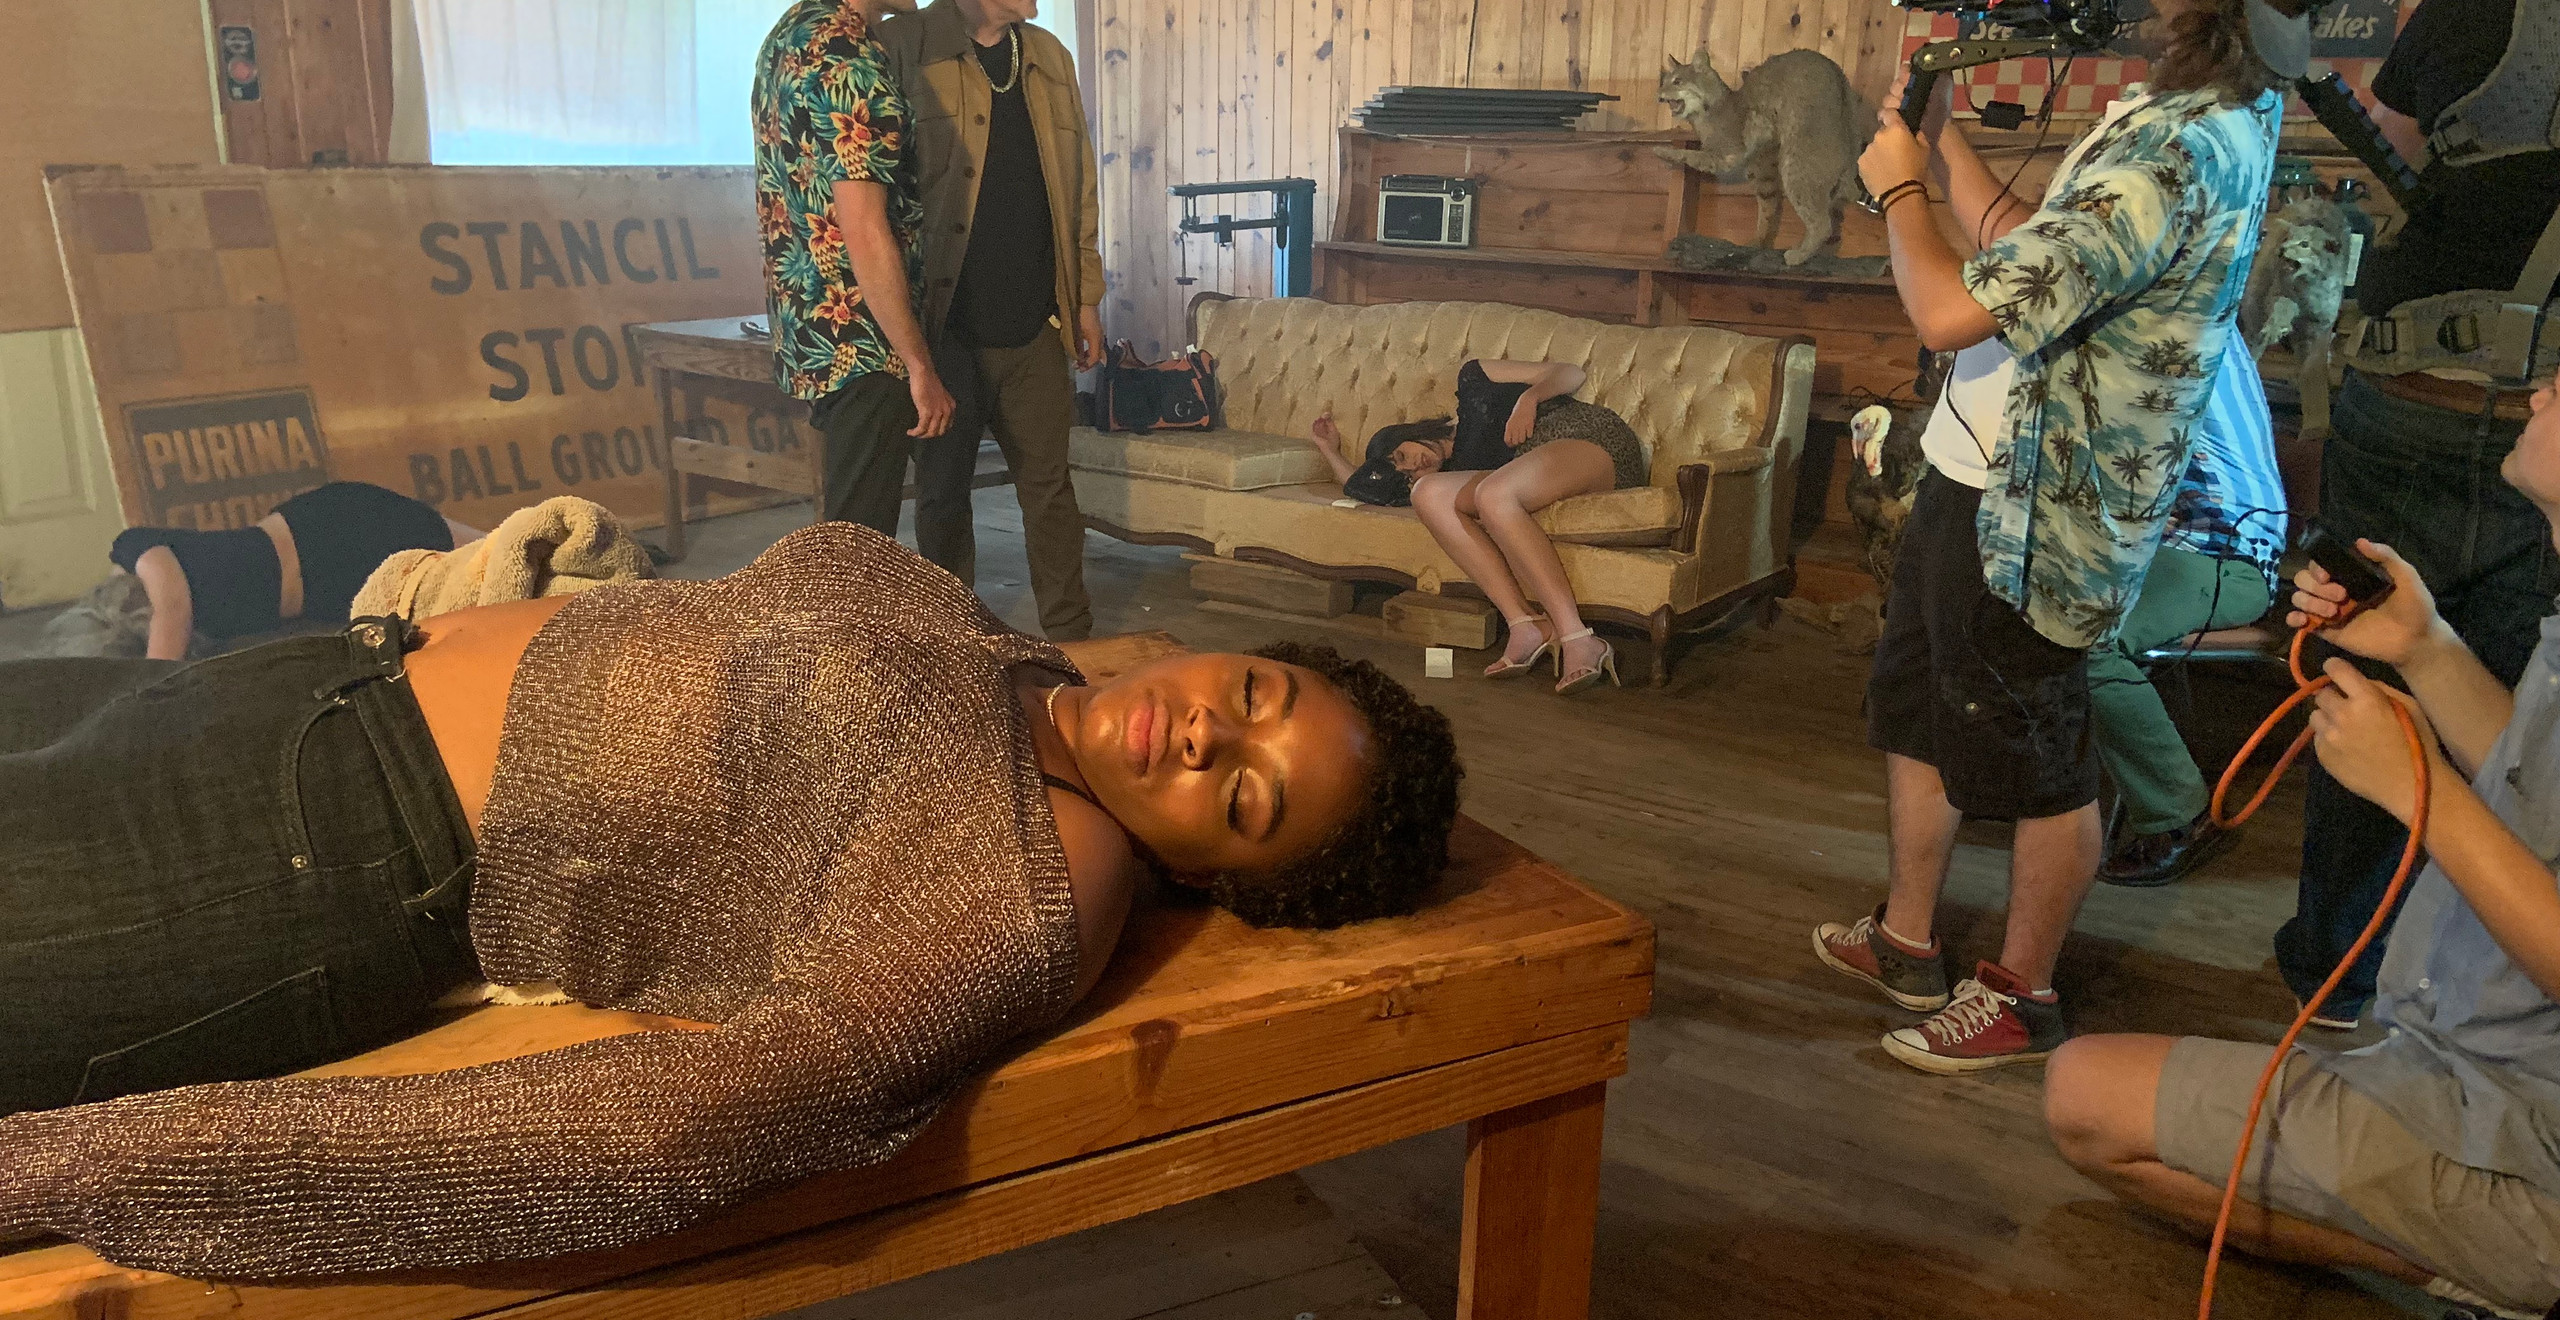 Behind the scene of sleight a 48 hour film project by m3 creative and michael mueller, brooklynn summers